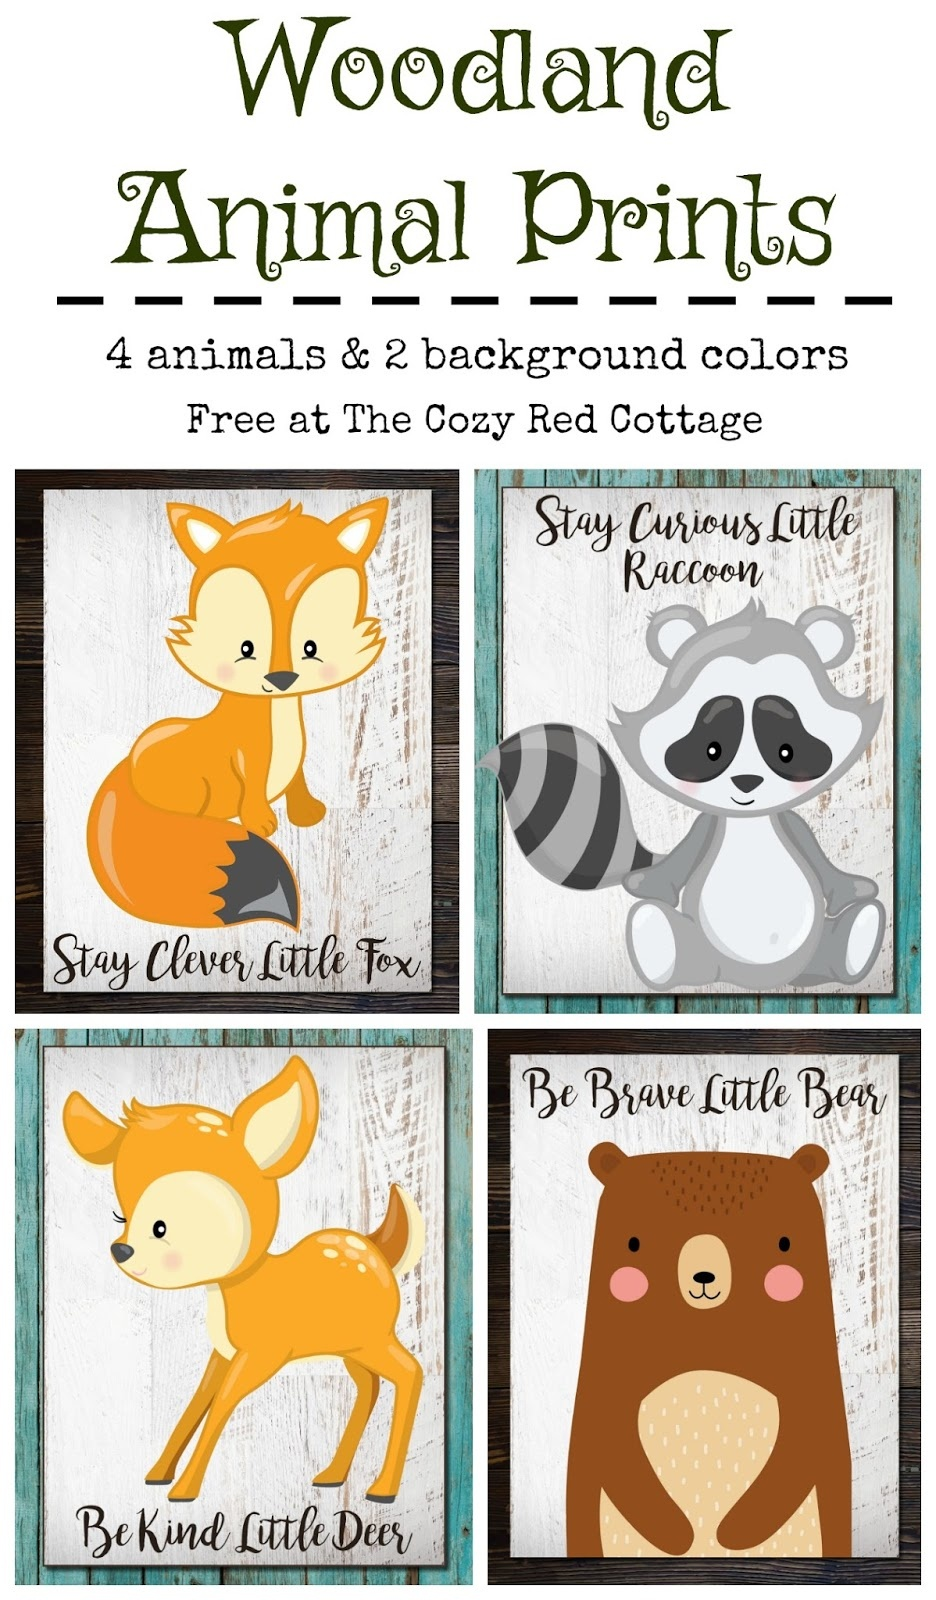 The Cozy Red Cottage: Free Woodland Animal Prints - Free Woodland Animal Printables